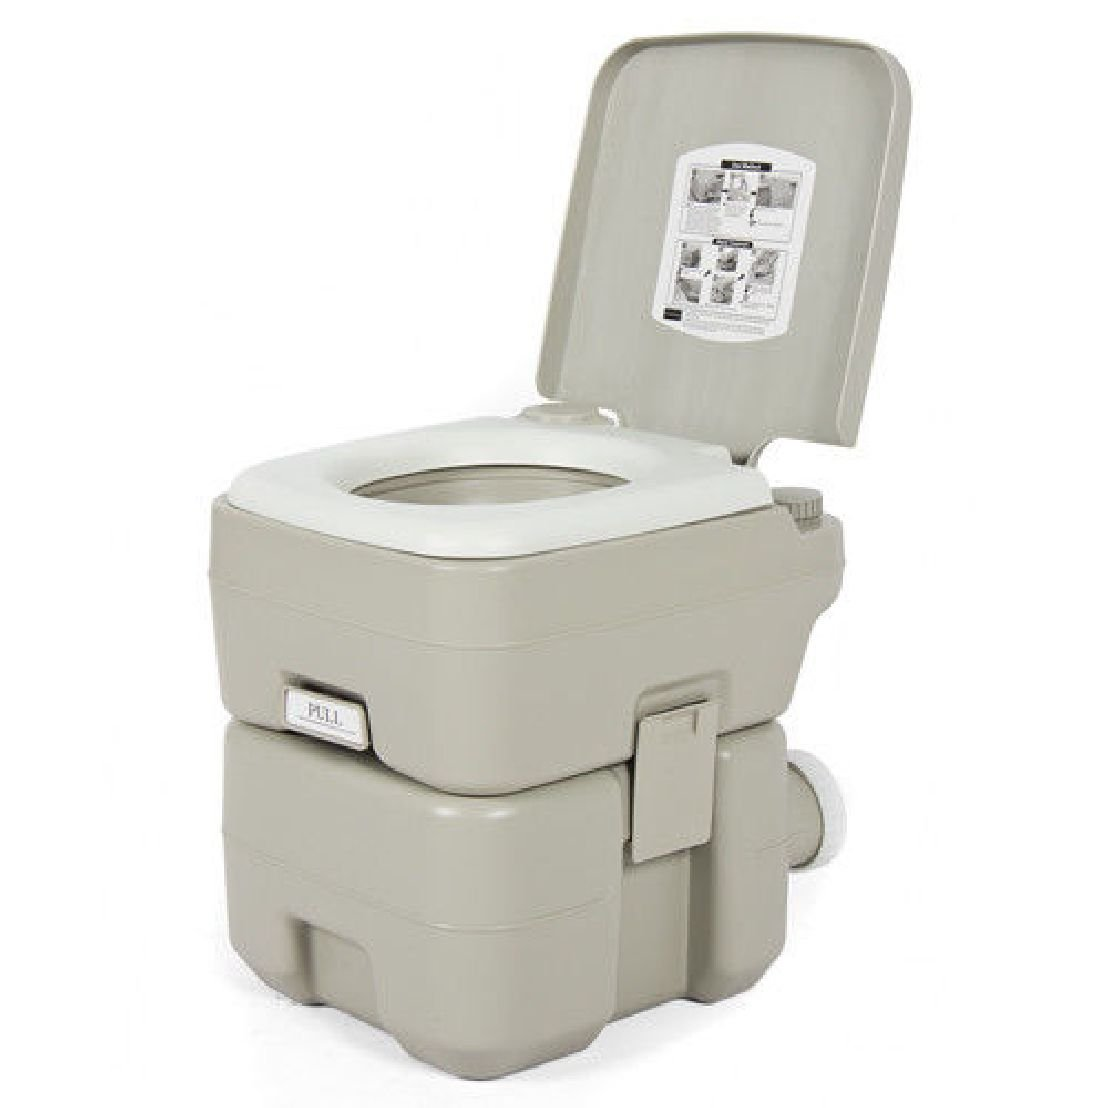 Portable Toilet 5 Gallon Dual Spray Jets Travel Outdoor Camping Hiking Toilet by BEC